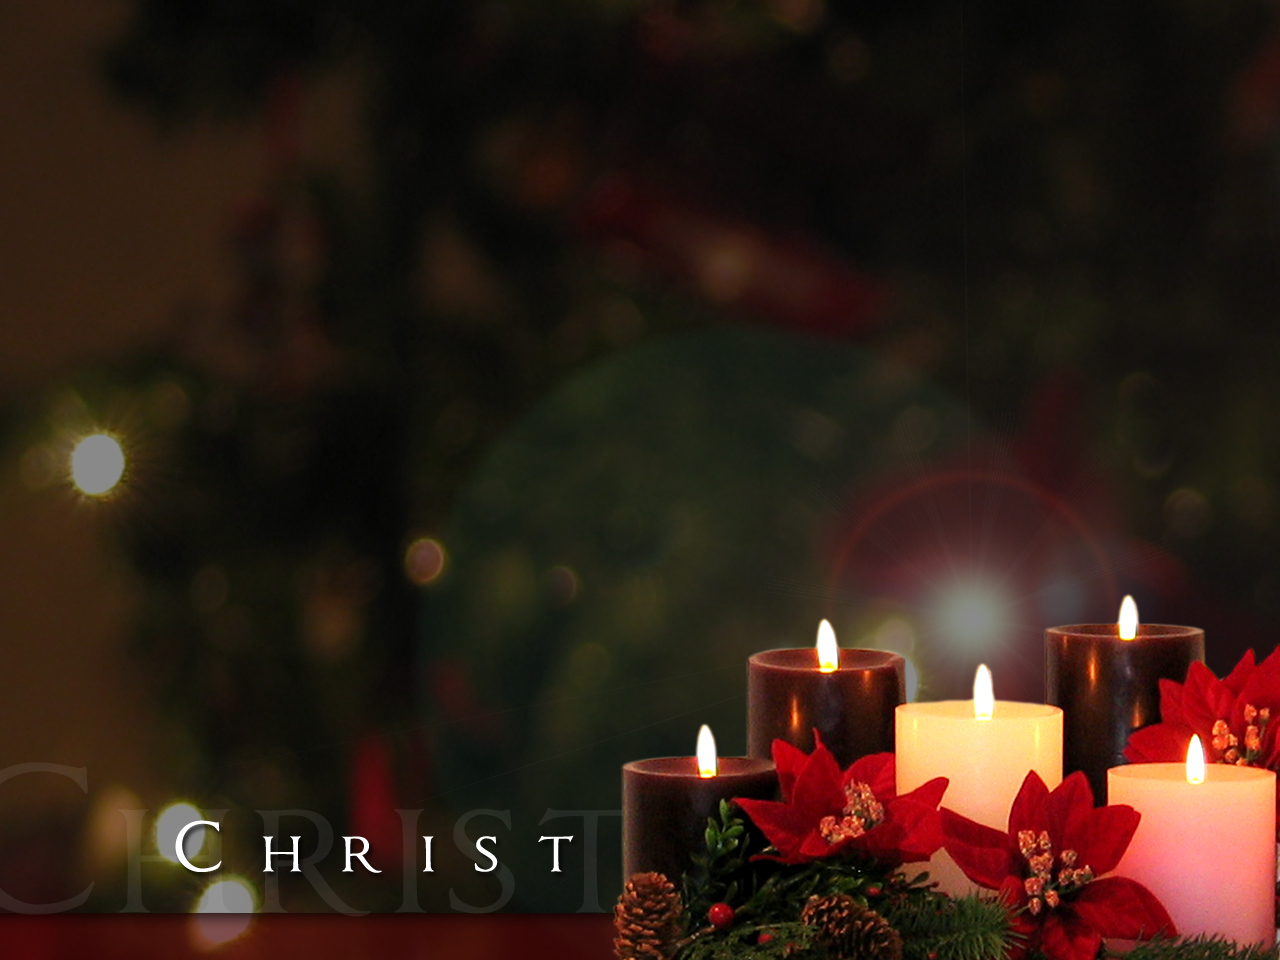 Christmas Candle Wallpapers   Download Christmas Candle Wallpapers 1280x960